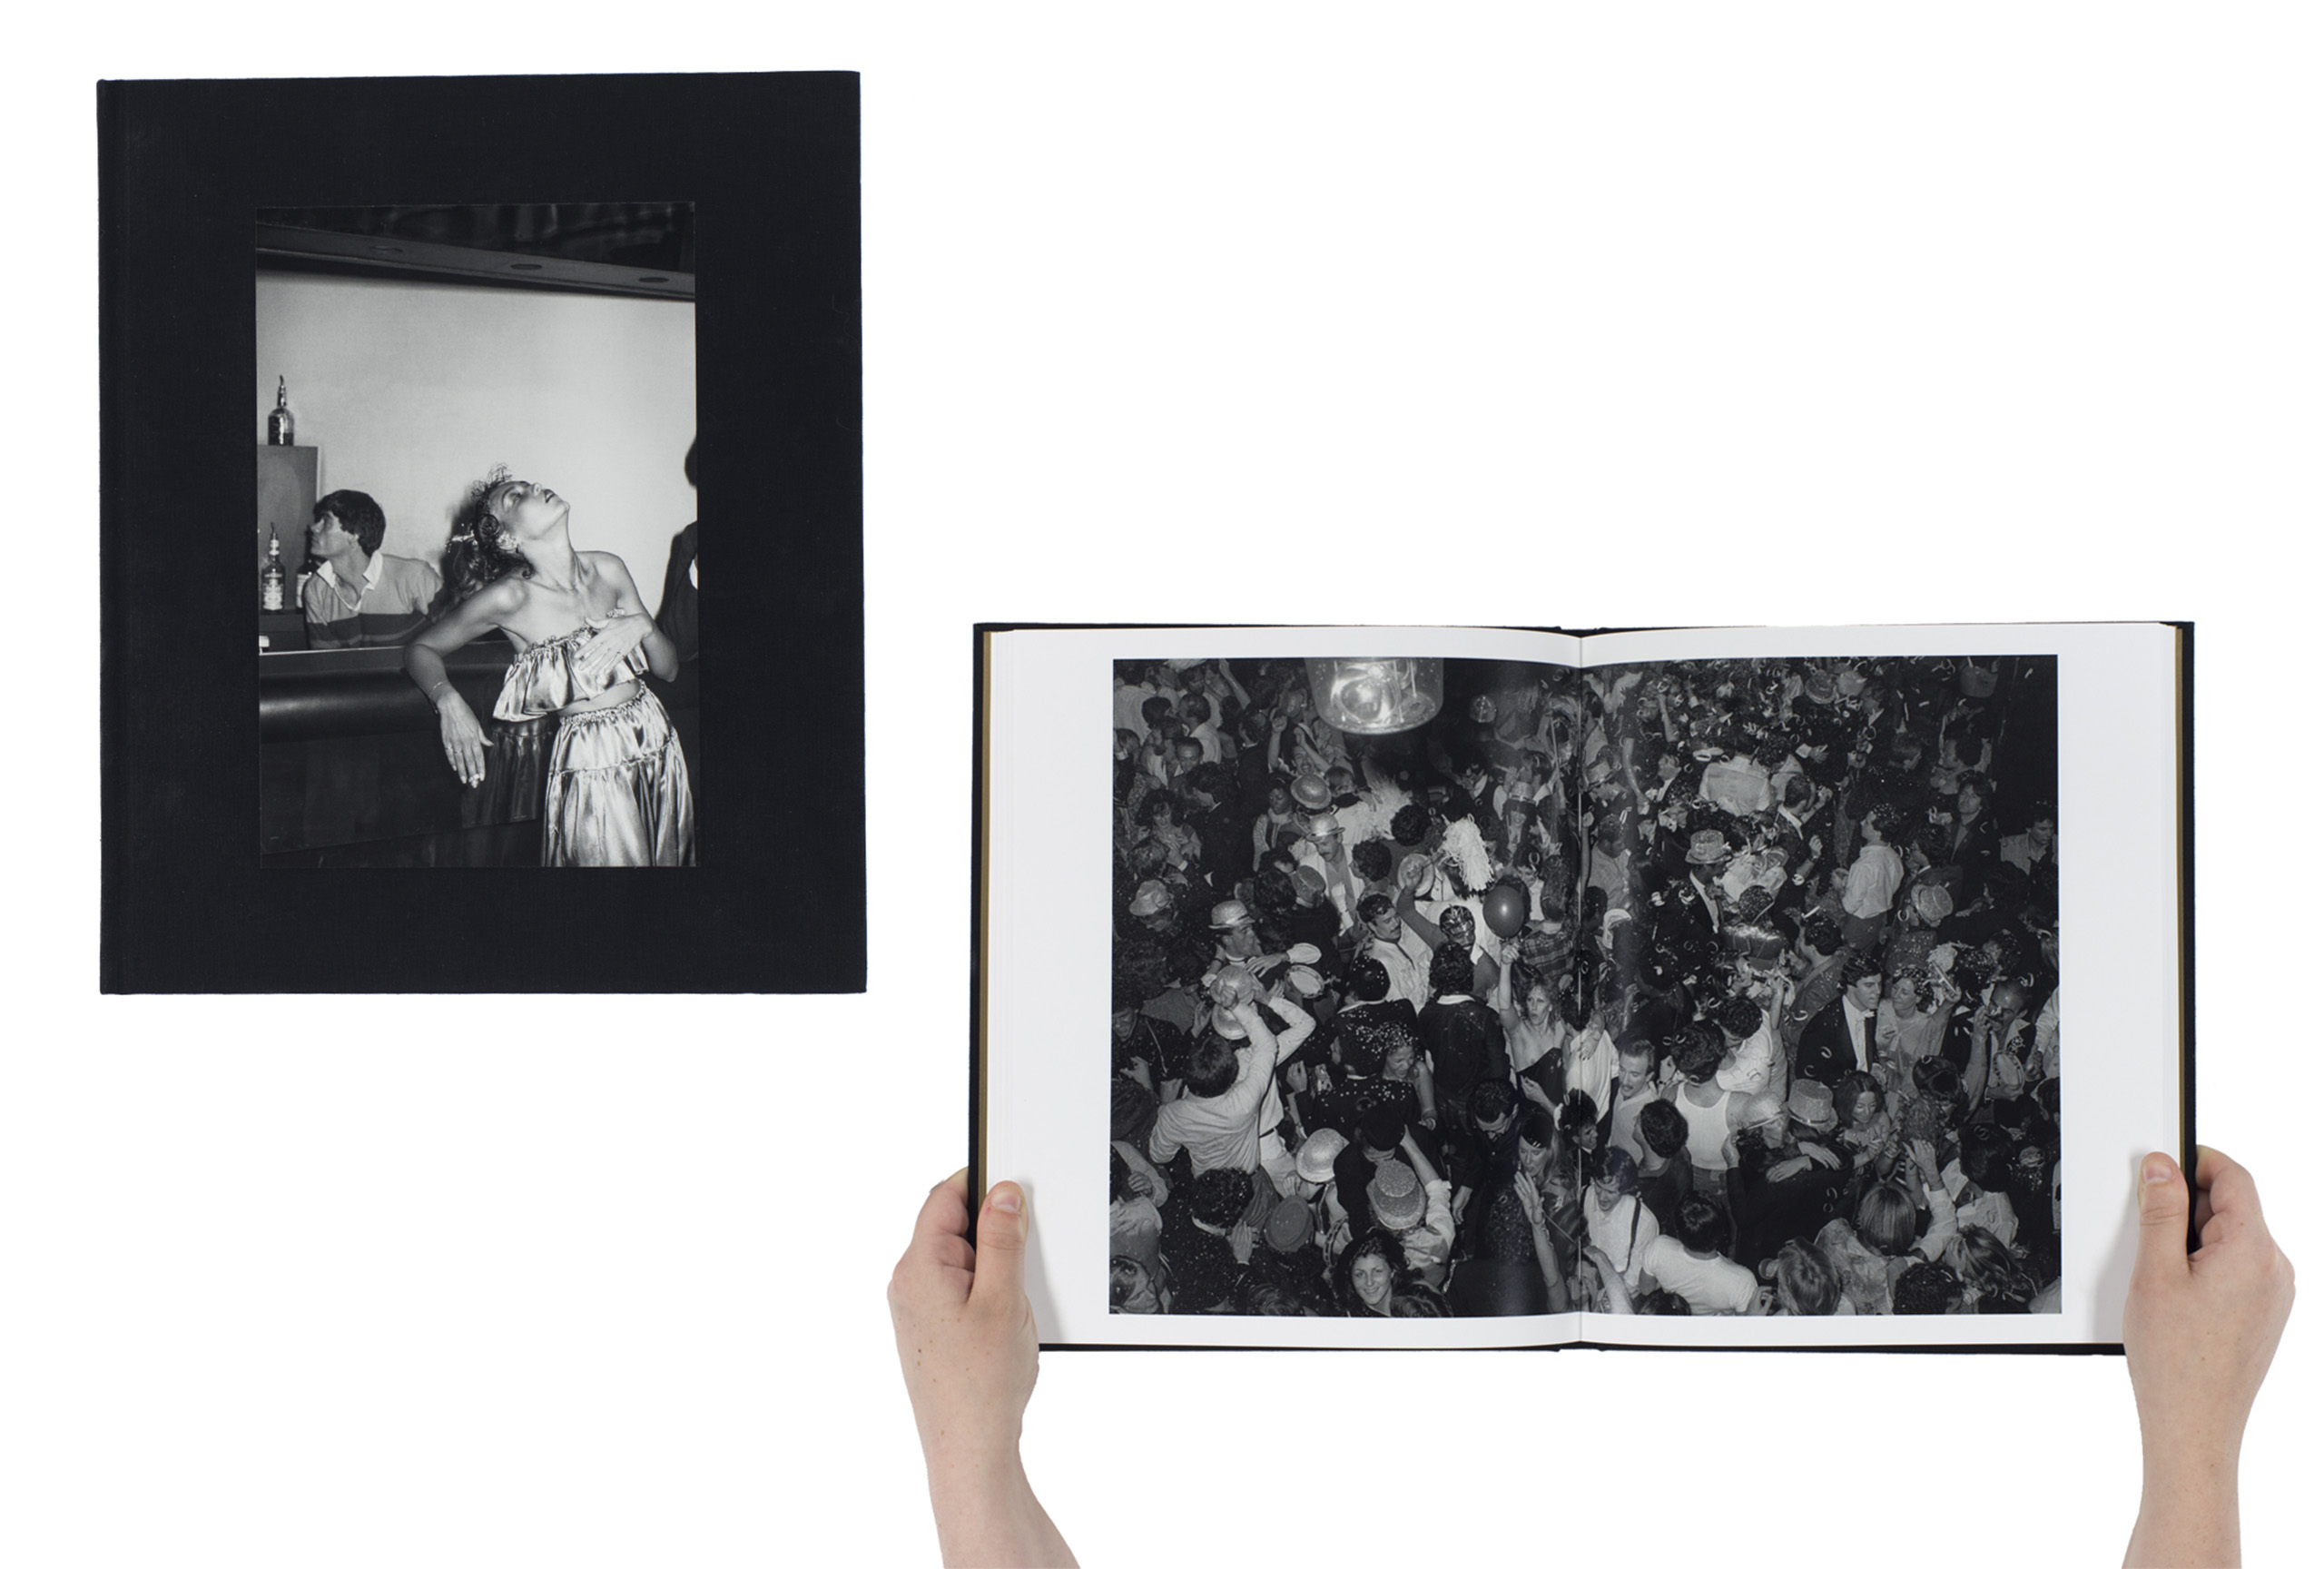 Studio 54 by Tod Papageorge, published by Walther König. Short-listed for PhotoBook of the Year.